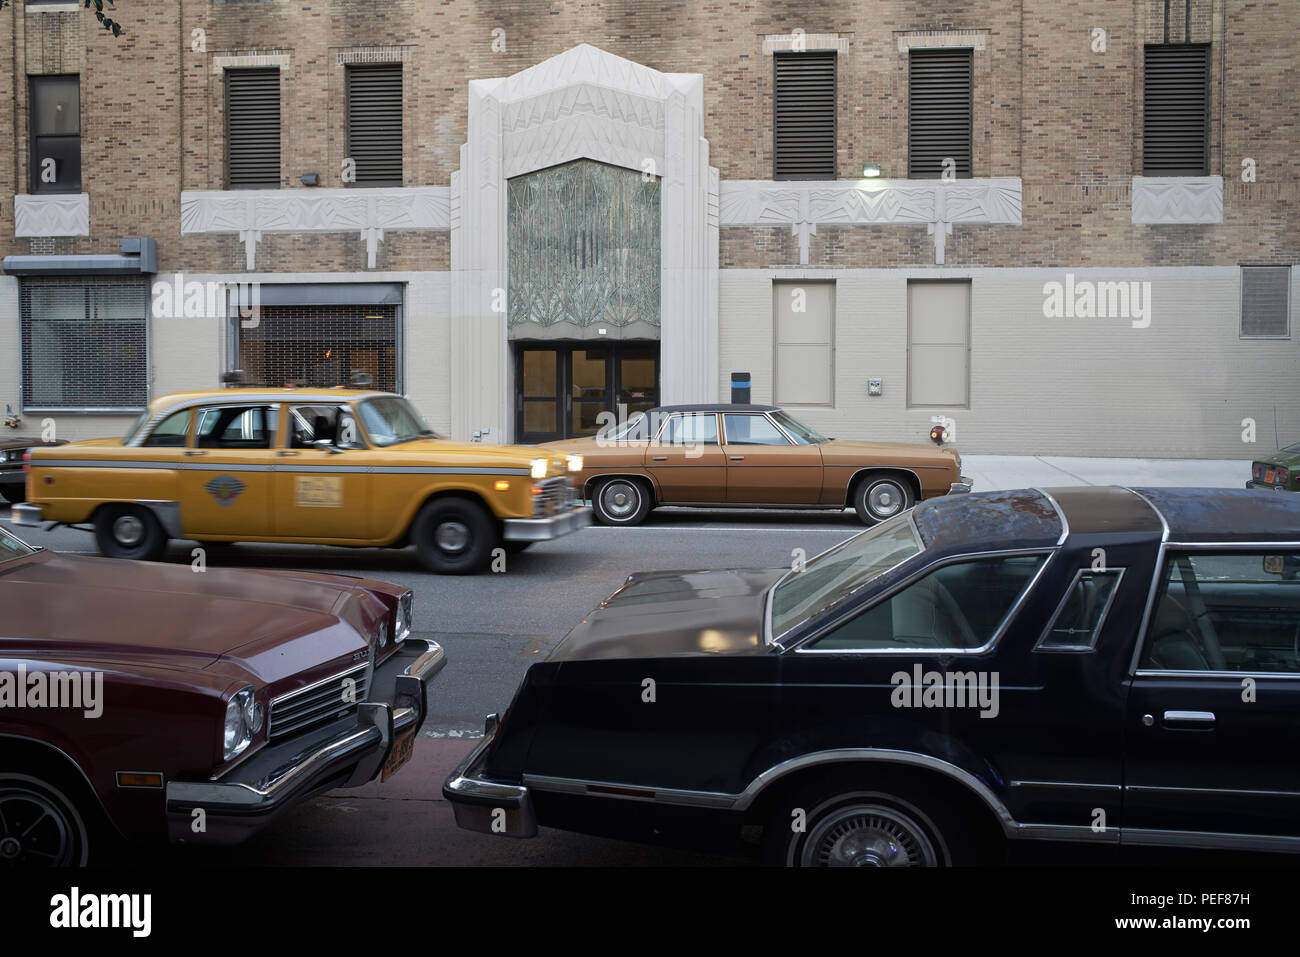 Vintage New York City Checker taxicab driving along vintage seventies cars - Stock Image